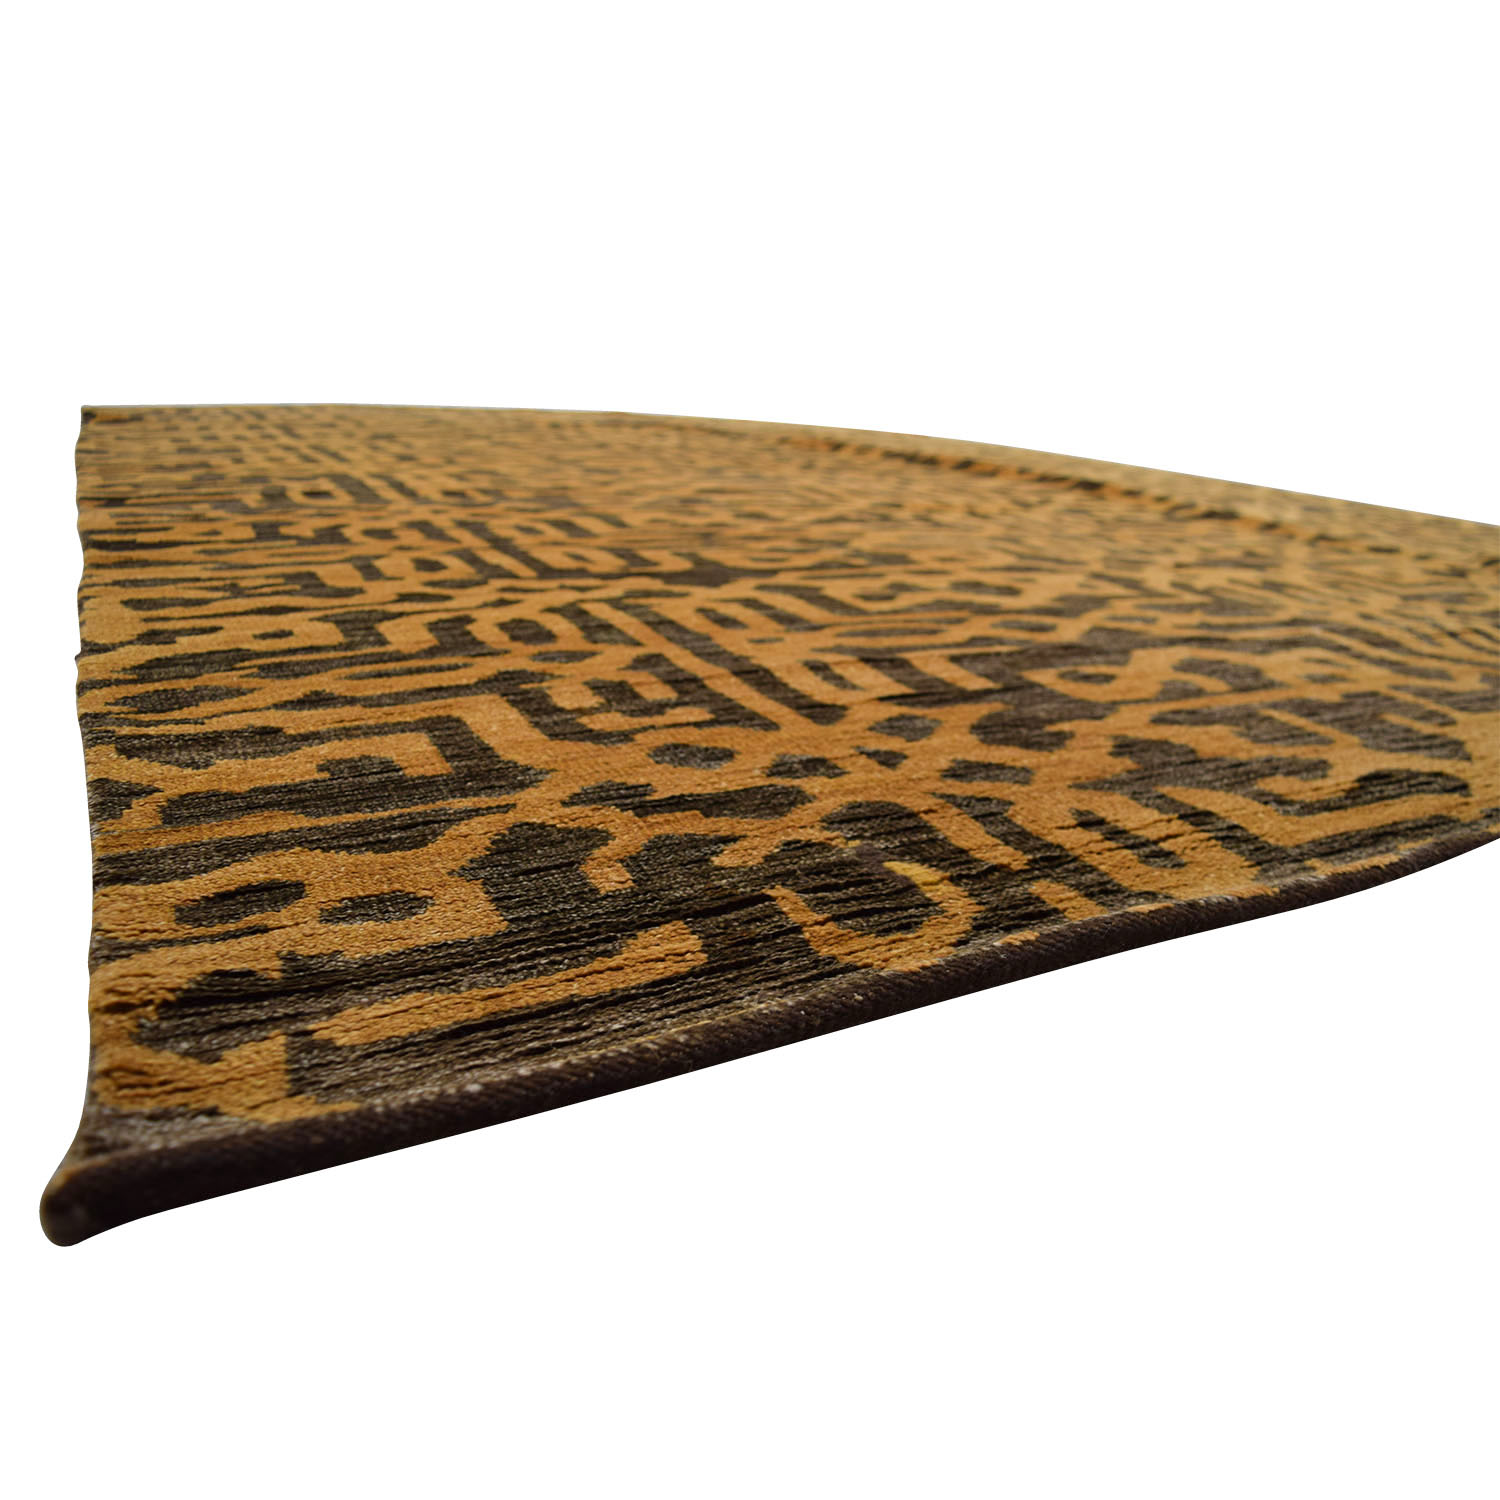 shop Obeetee Hand Knotted Brown and Tan Wool Rug Obeetee Decor